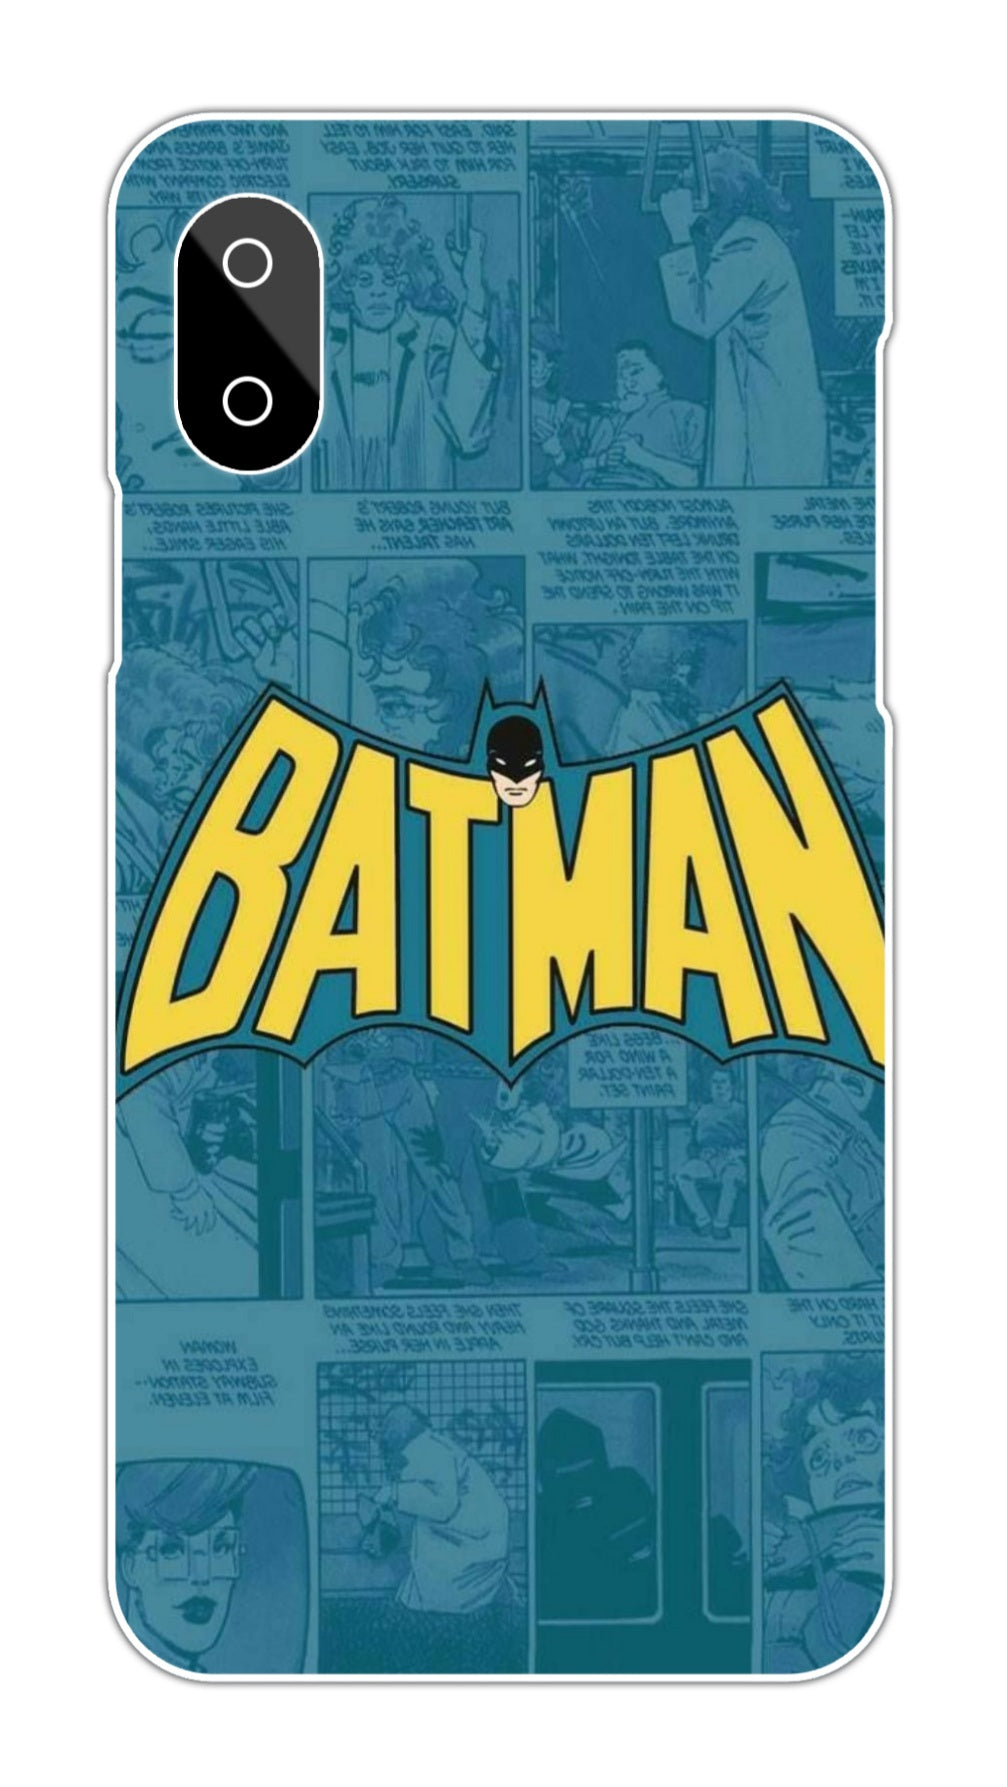 BATMAN COMIC BG CASE